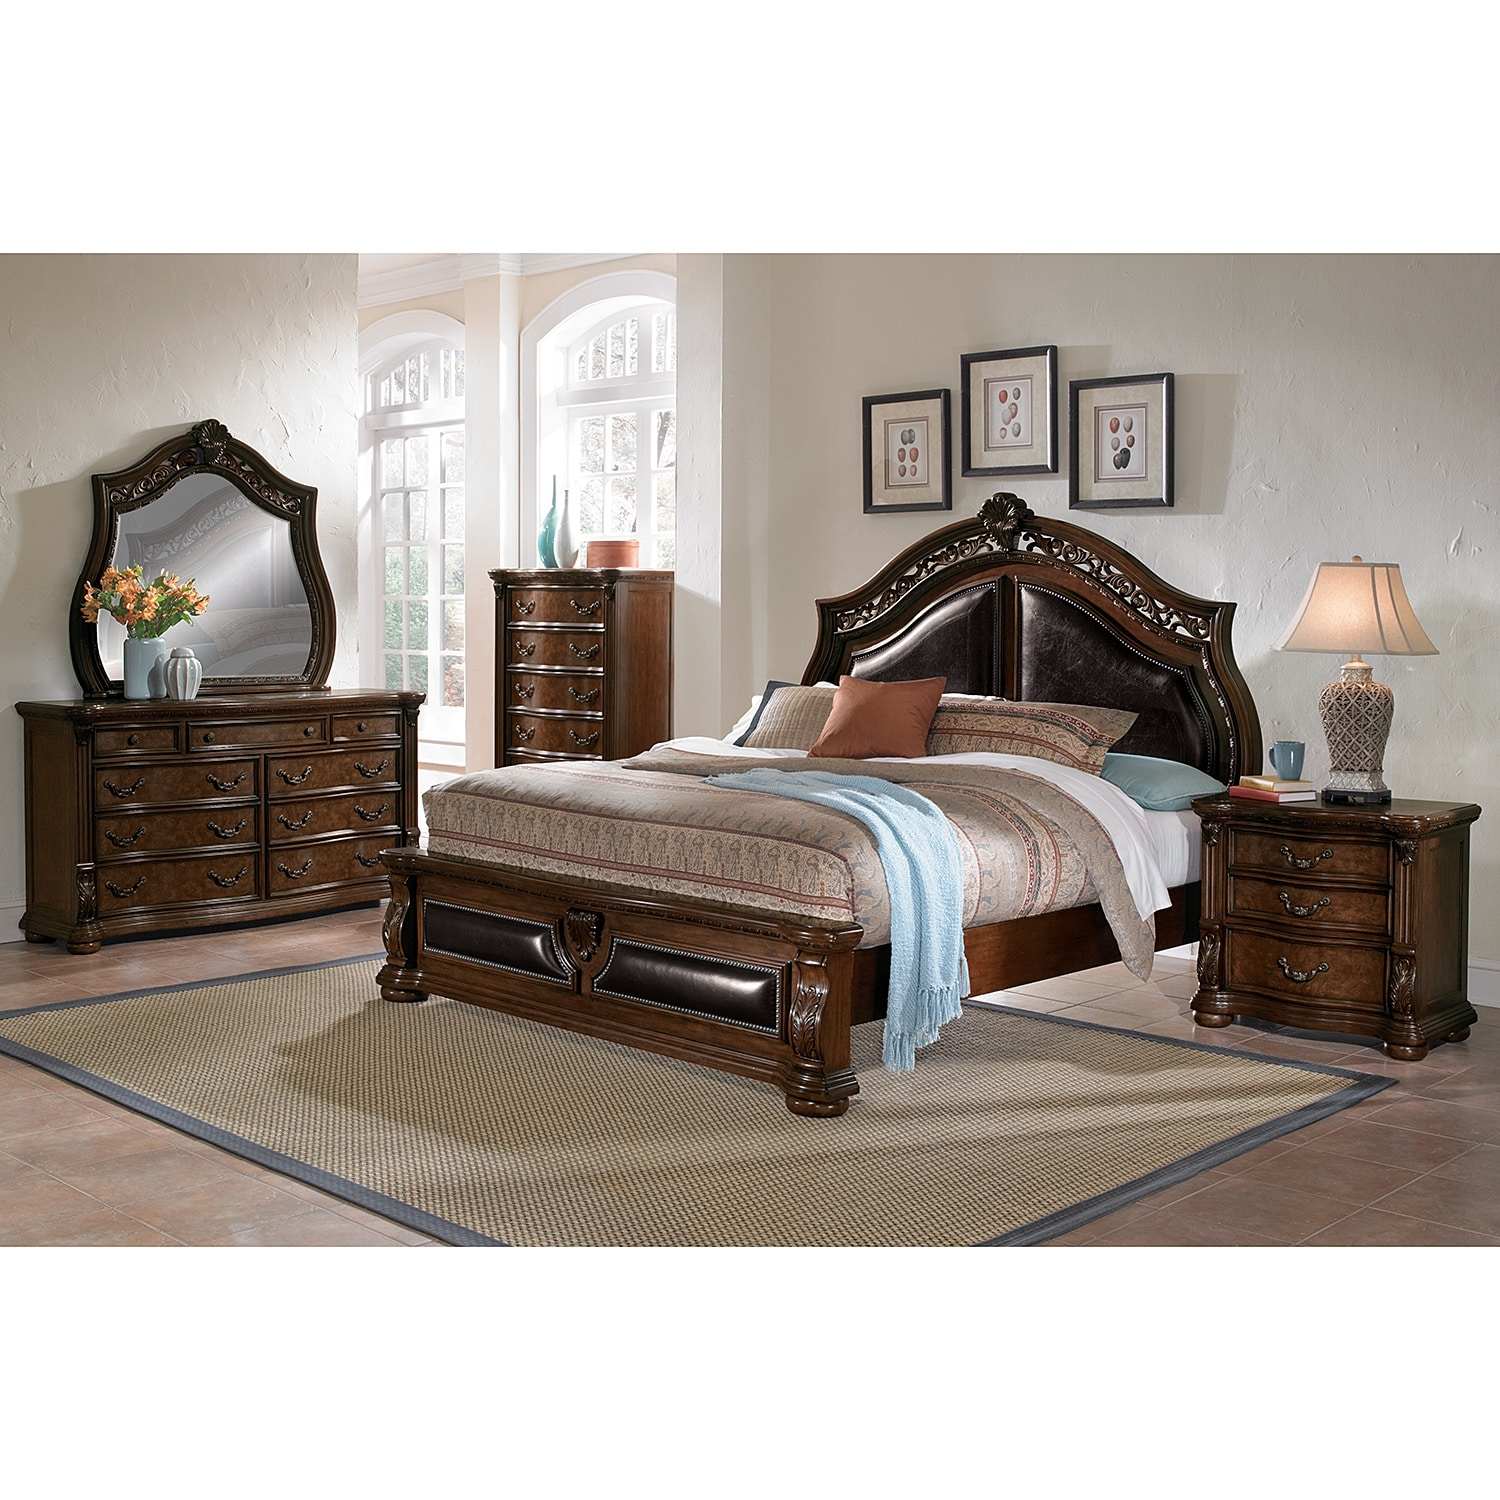 morocco bedroom nightstand value city furniture